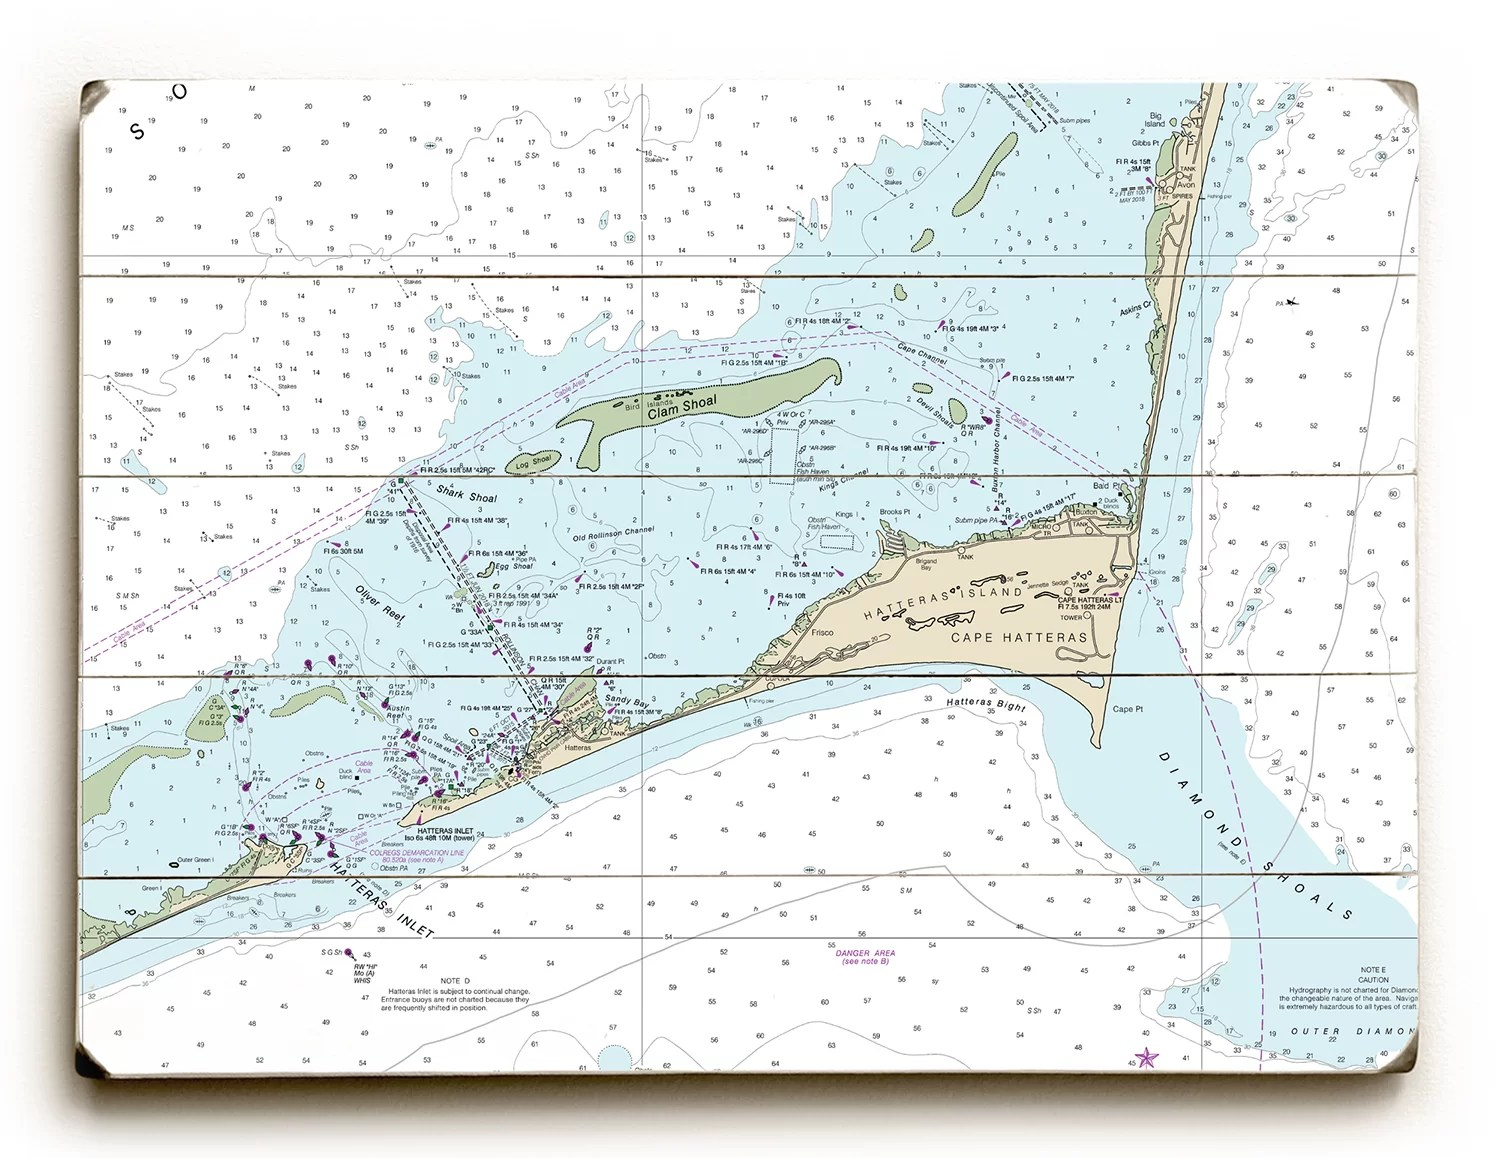 hight resolution of longshore tides nc cape hatteras hatteras inlet nc nautical chart sign graphic art print on wood wayfair